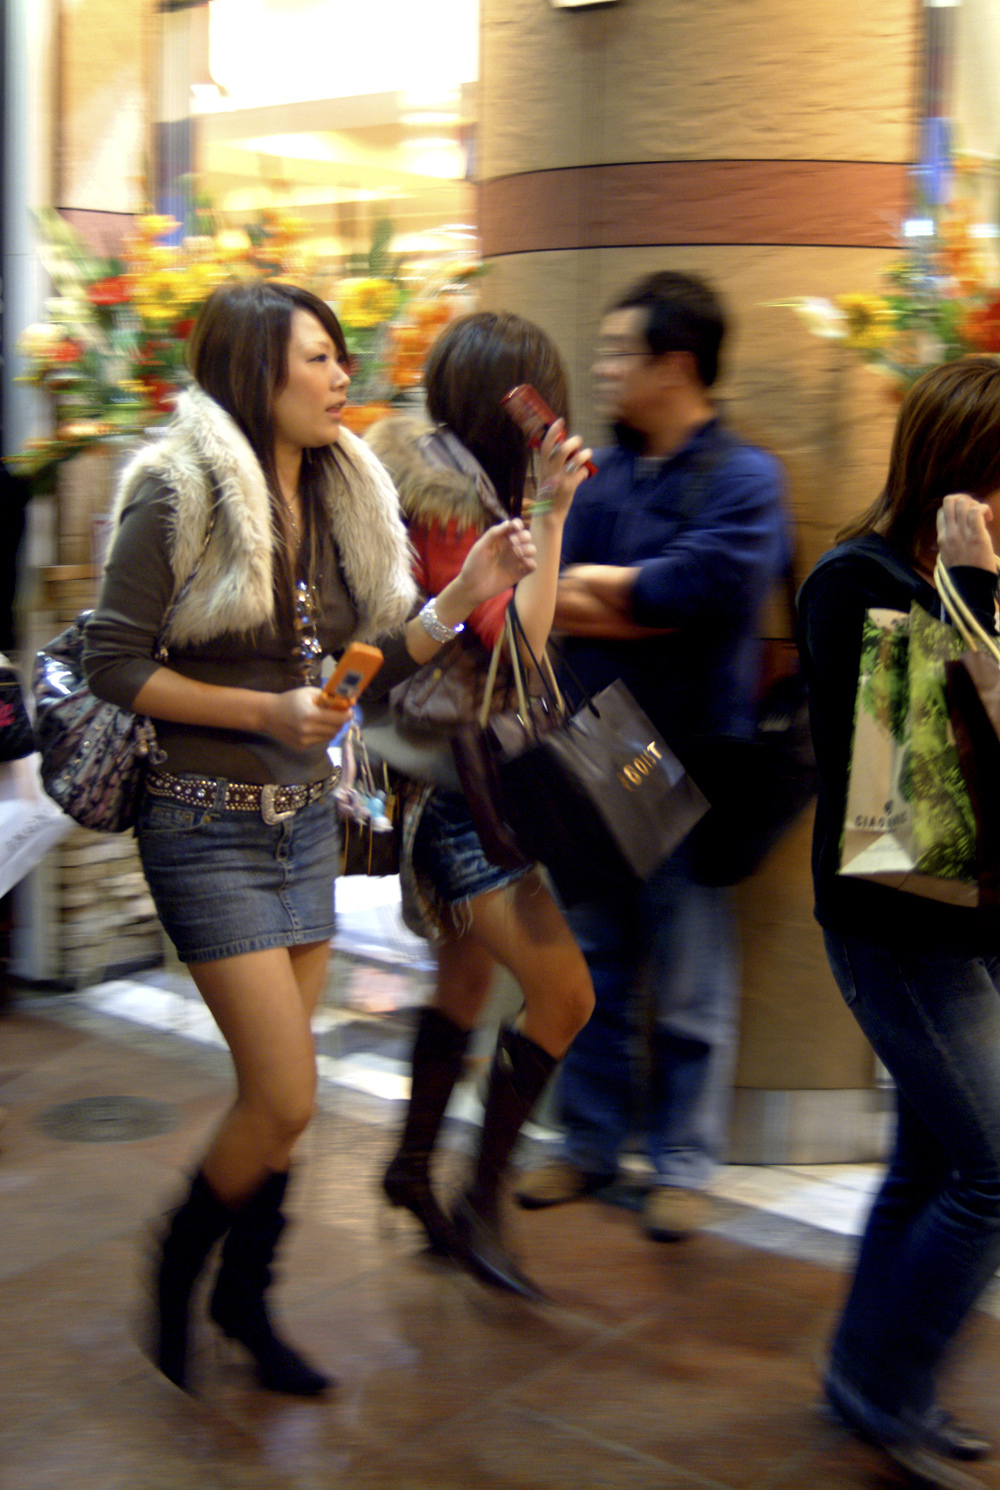 Young women shoppers in Kawaramachi-dori